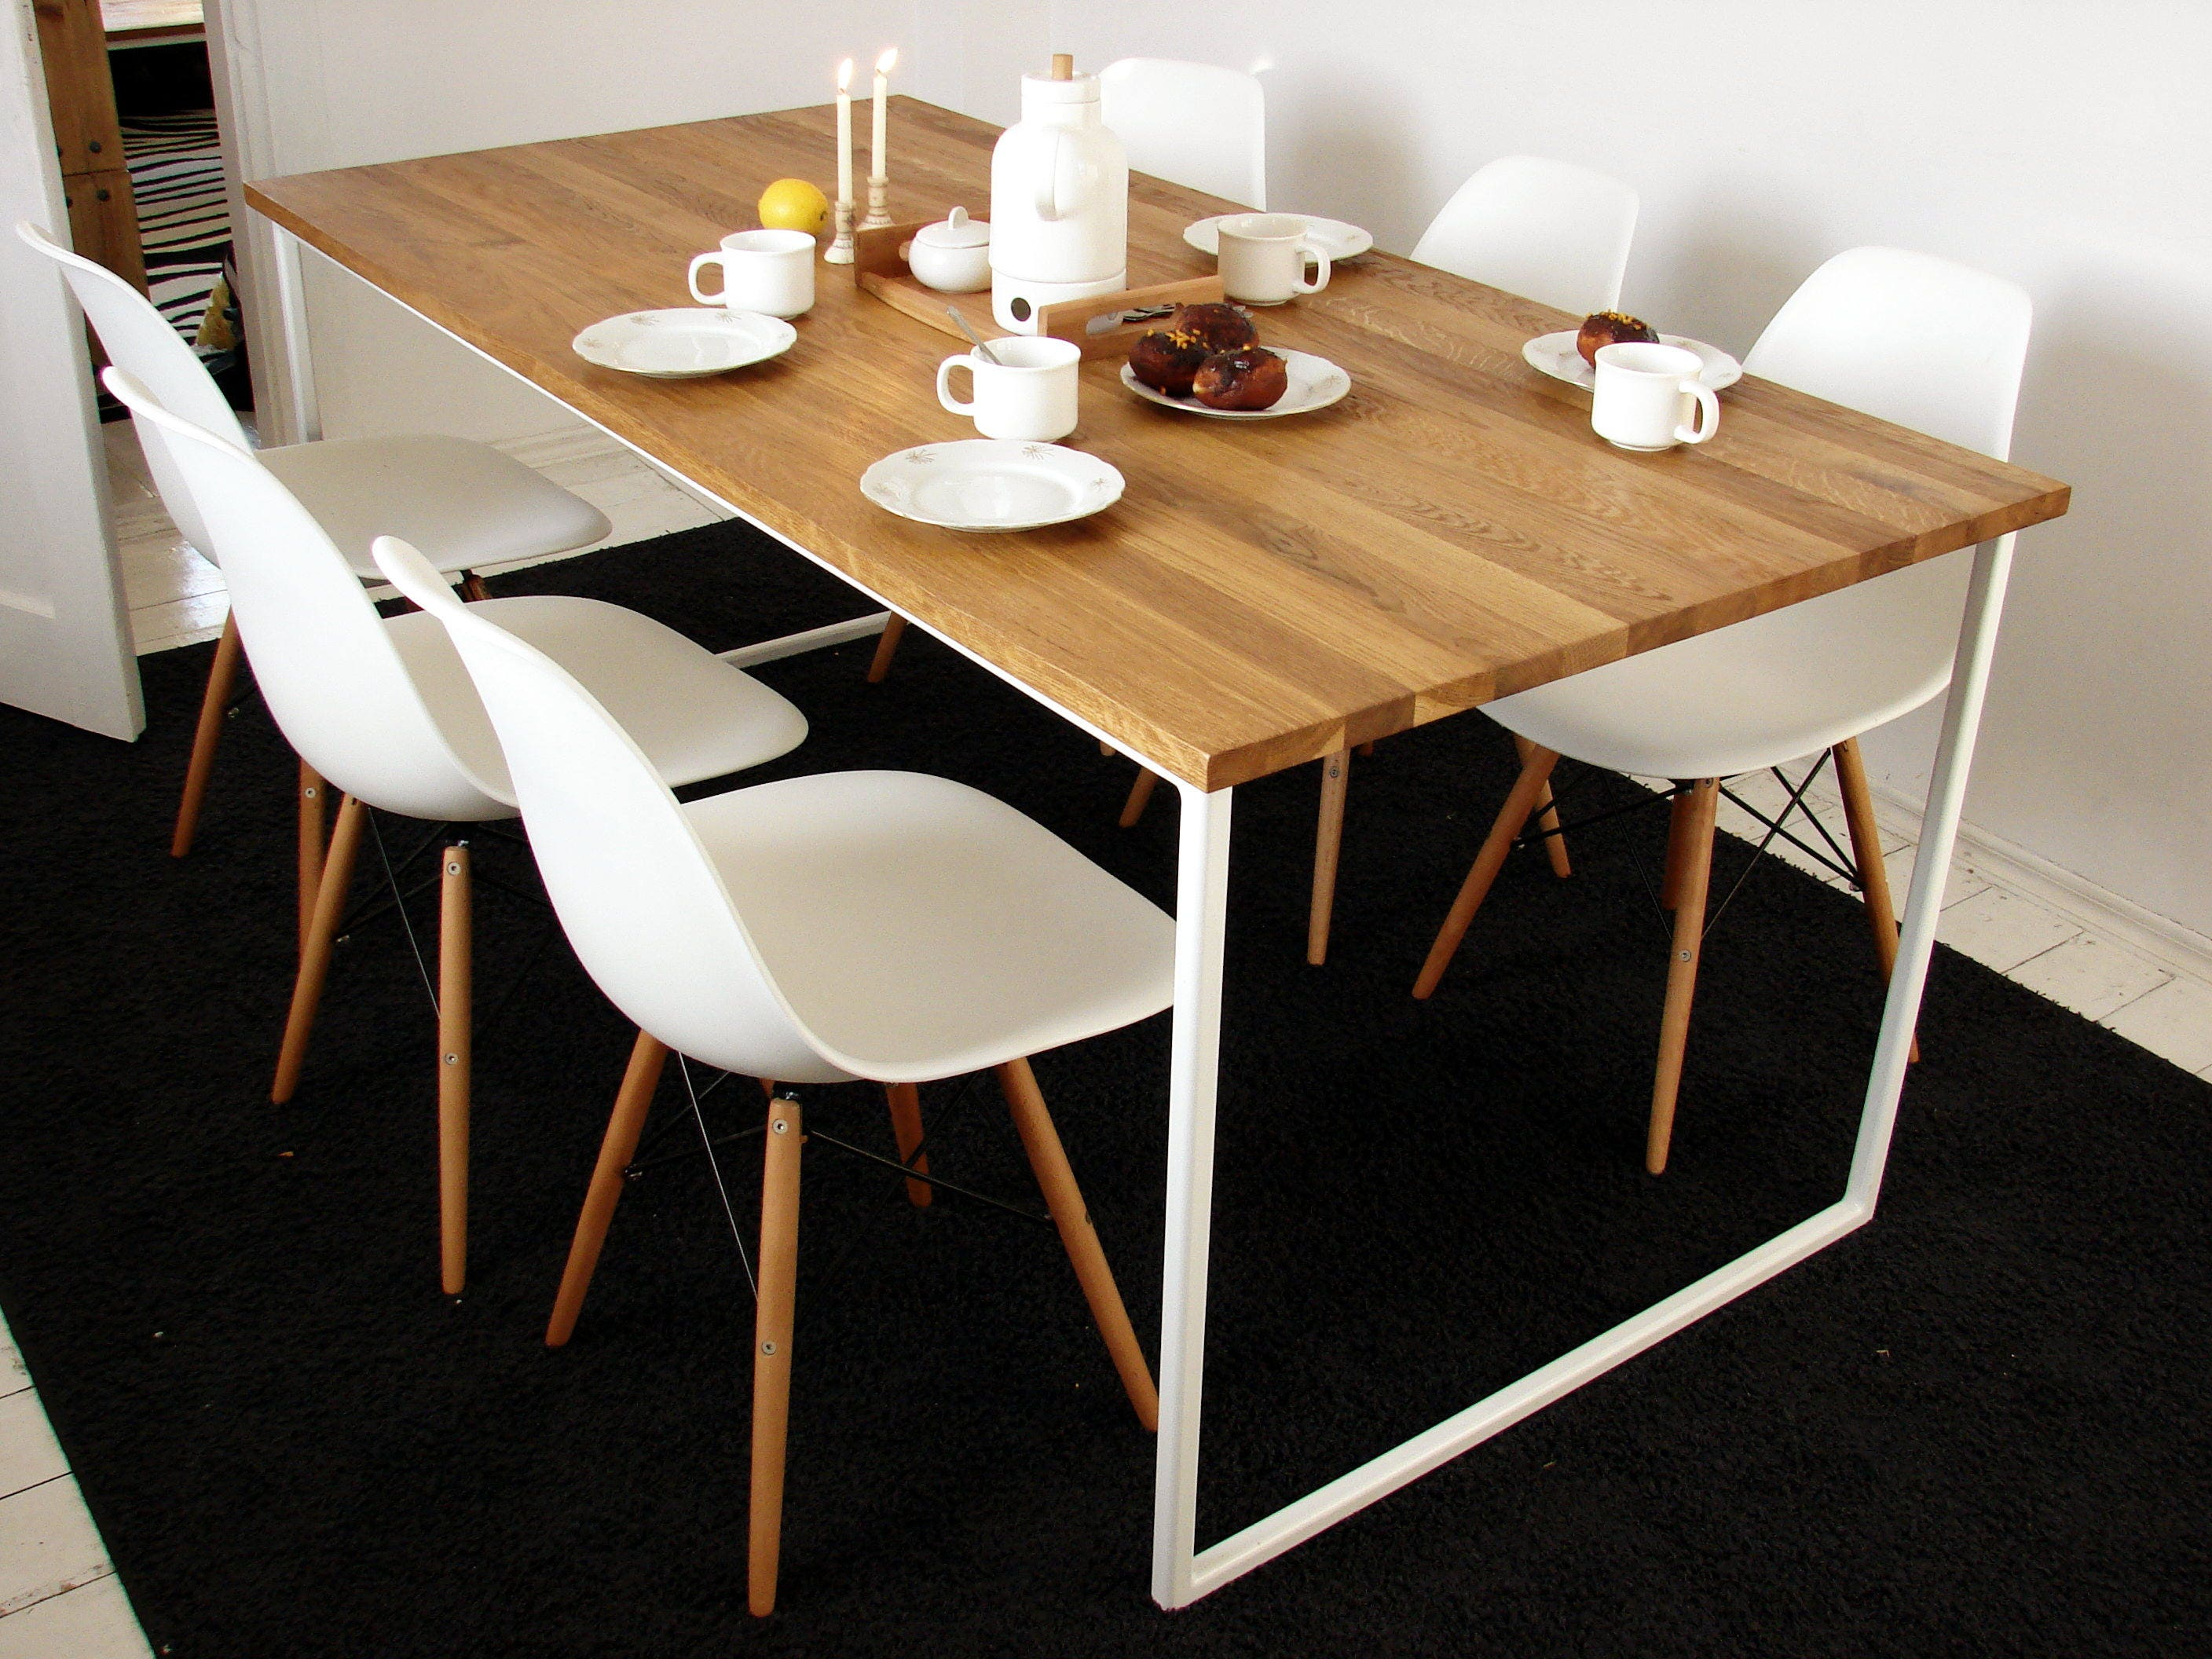 Scandinavian Dining Table Basic Tre Handmade Modern Table White Steel Frame Kitchen Table Solid Oak Wood Top Nordic Style Design